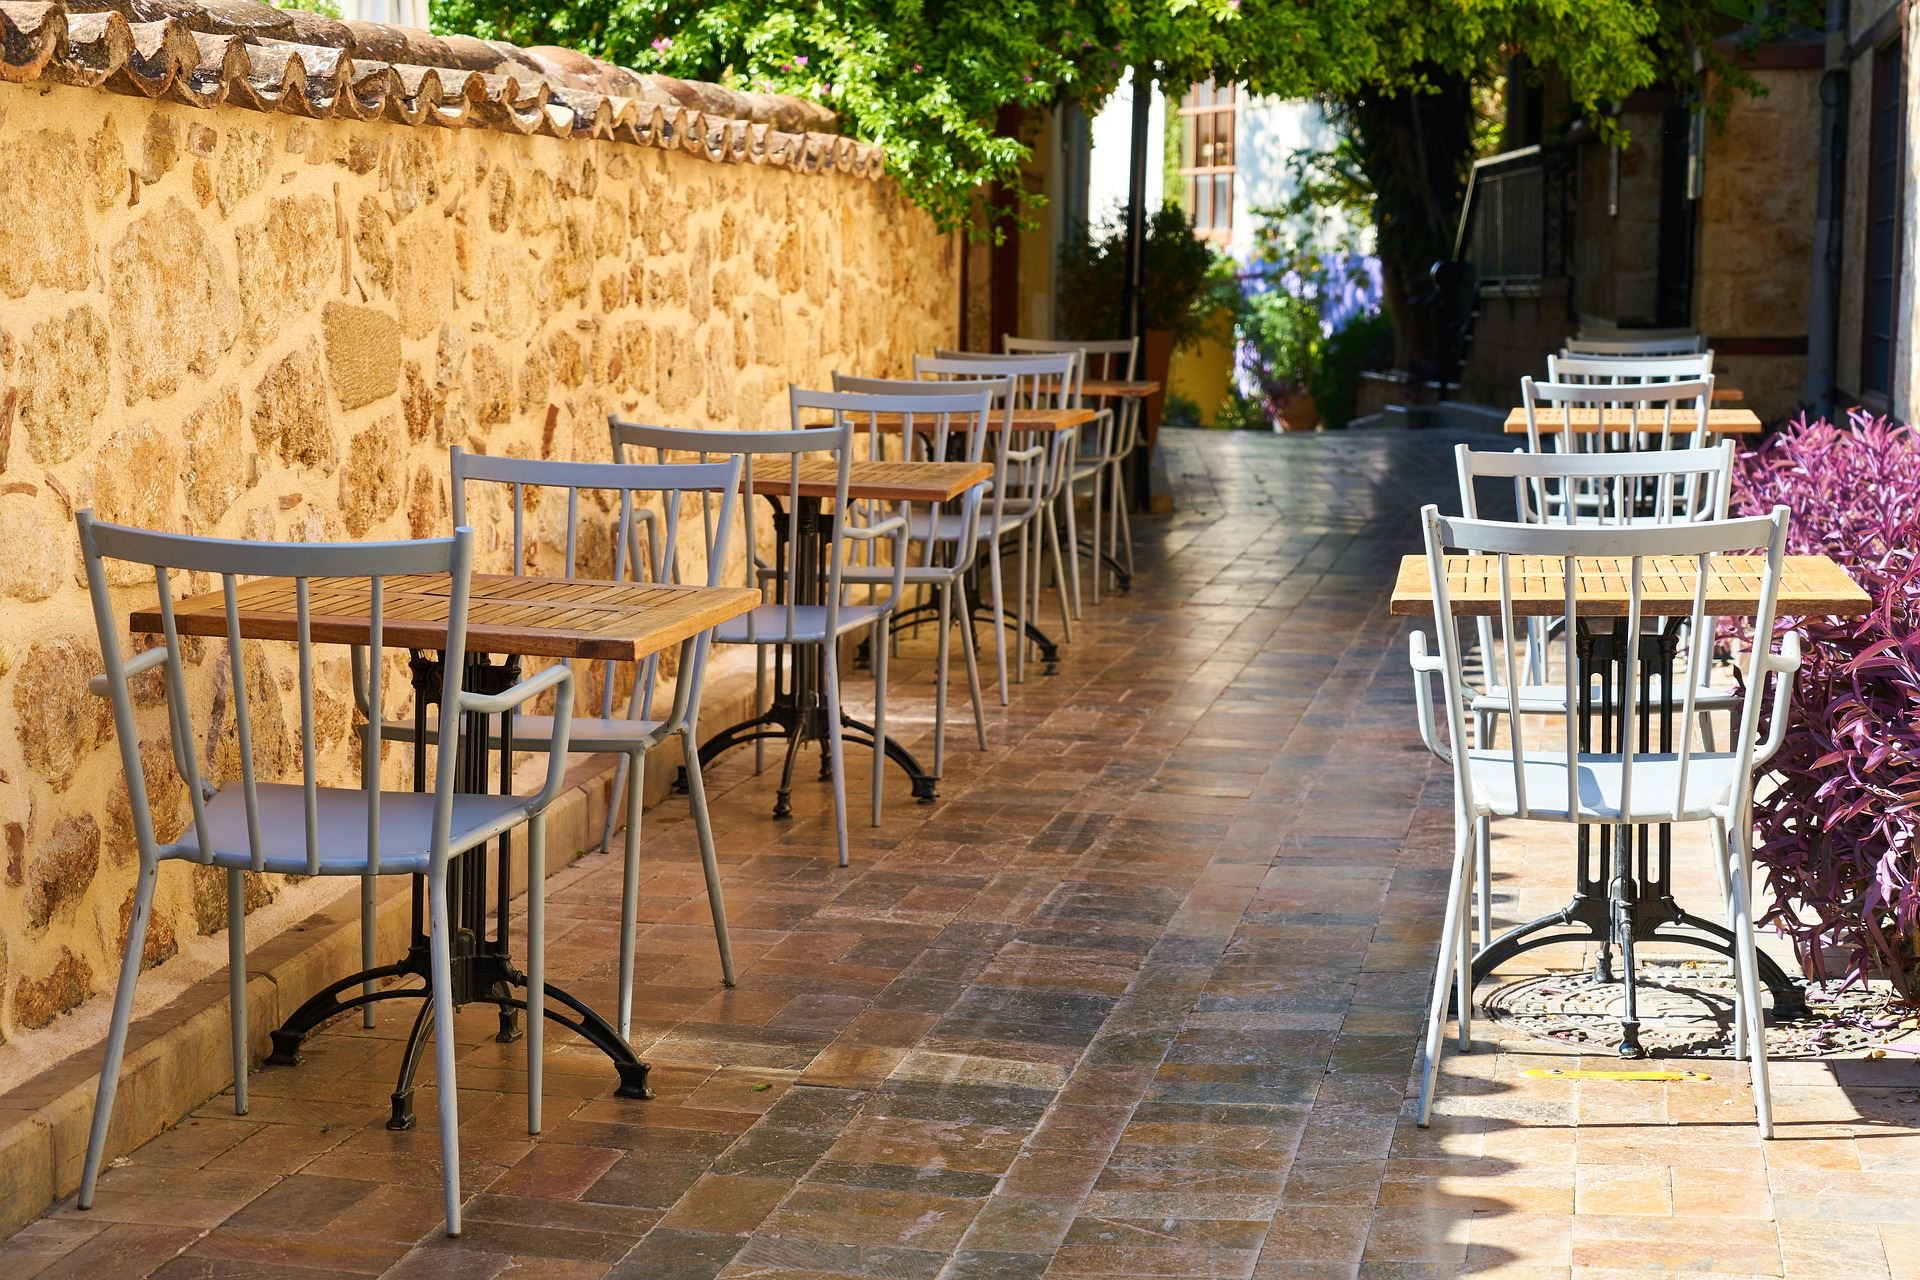 row of outdoor restaurant tables by a brick wall